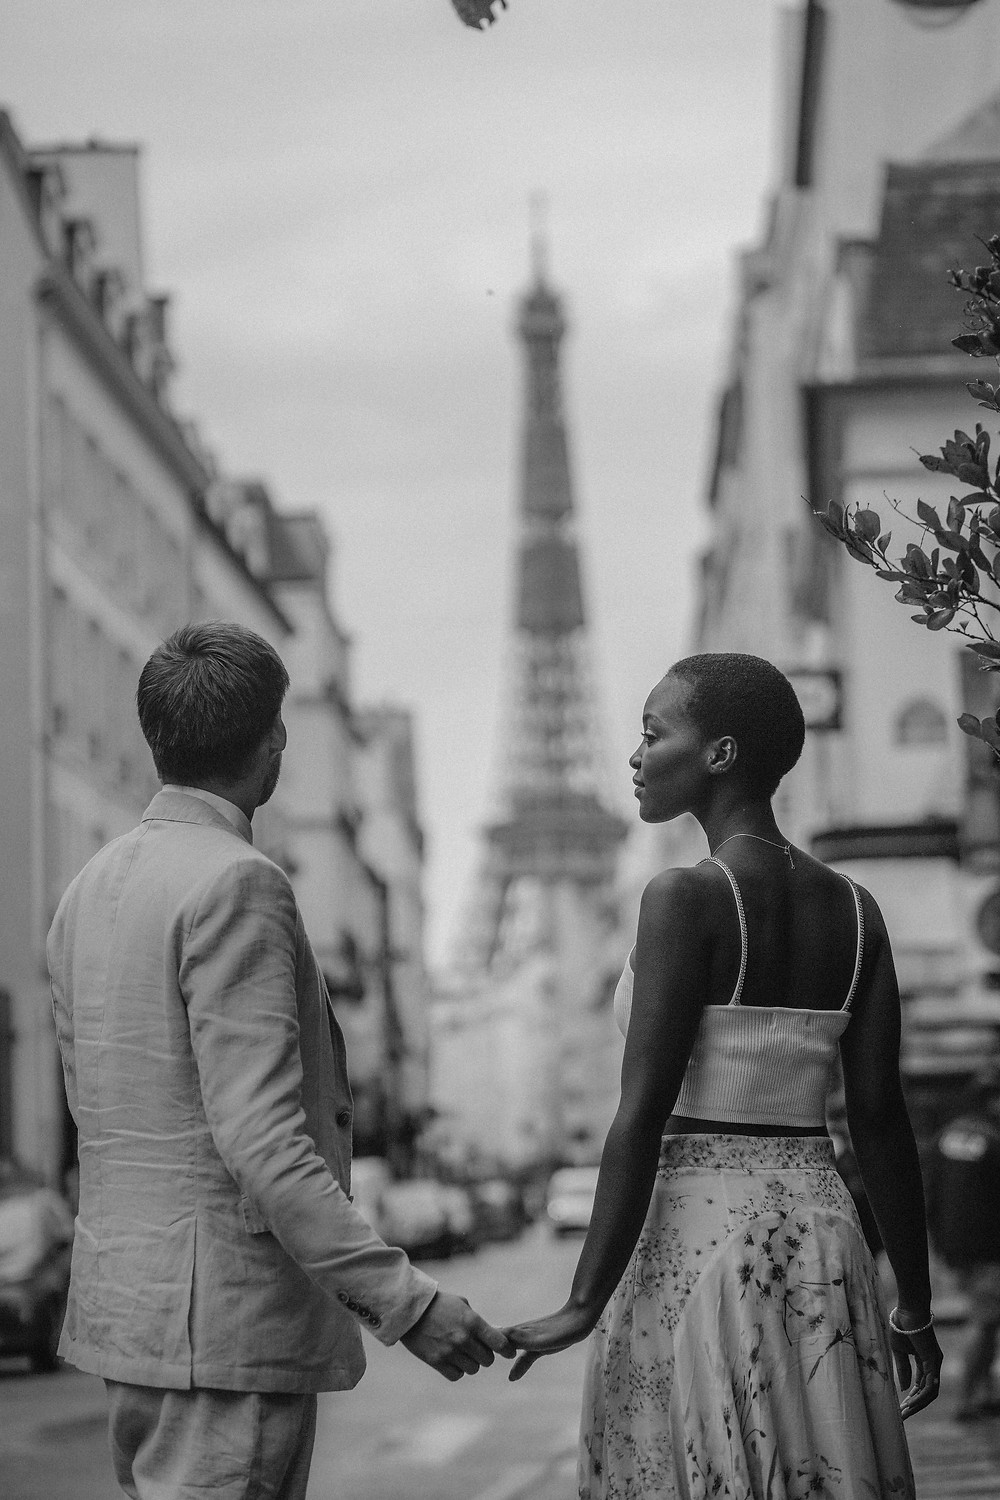 Interracial Couple photo black and white at paris street